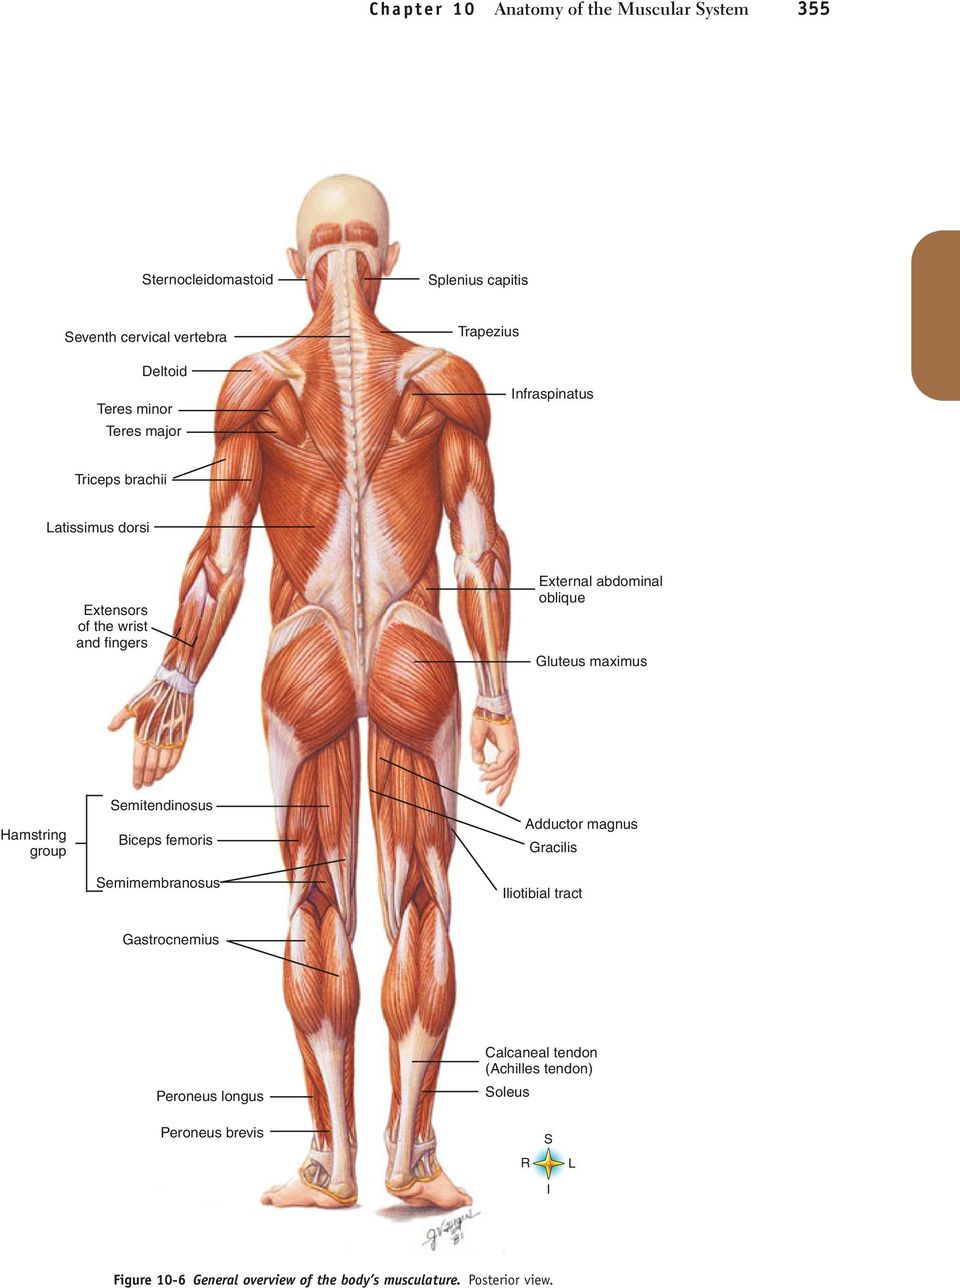 gross anatomy of the muscular system Gross anatomy is the study of the organs,parts and structures of a body visible to the naked eye while systemic anatomy is the study of a group of related structures within a particular system.